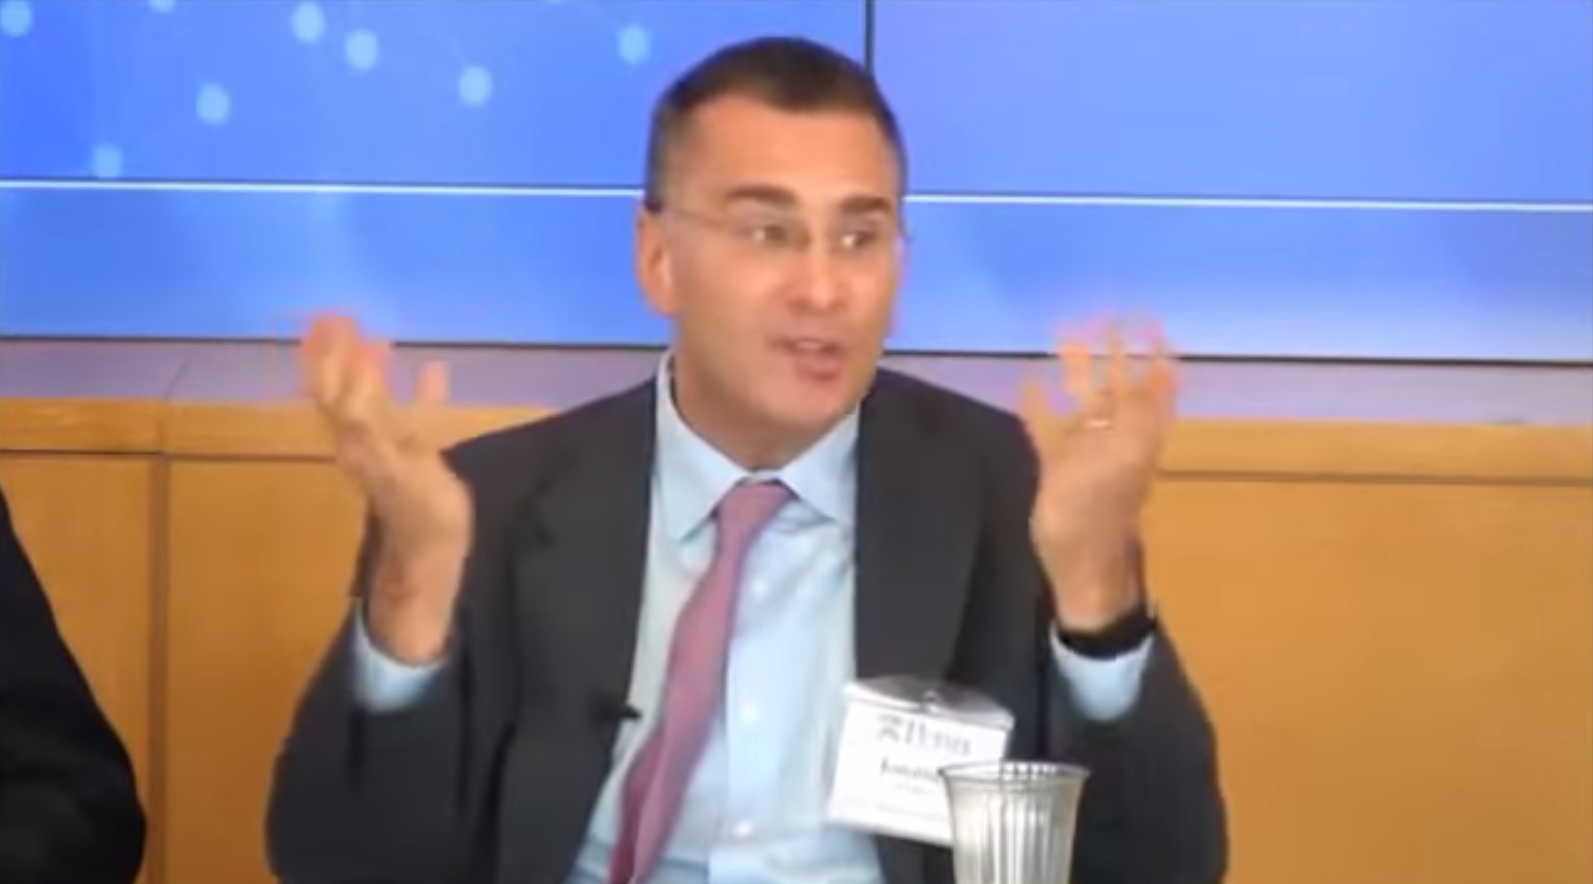 Caught on Camera: Obamacare Architect Admits Deceiving Americans to Pass Law